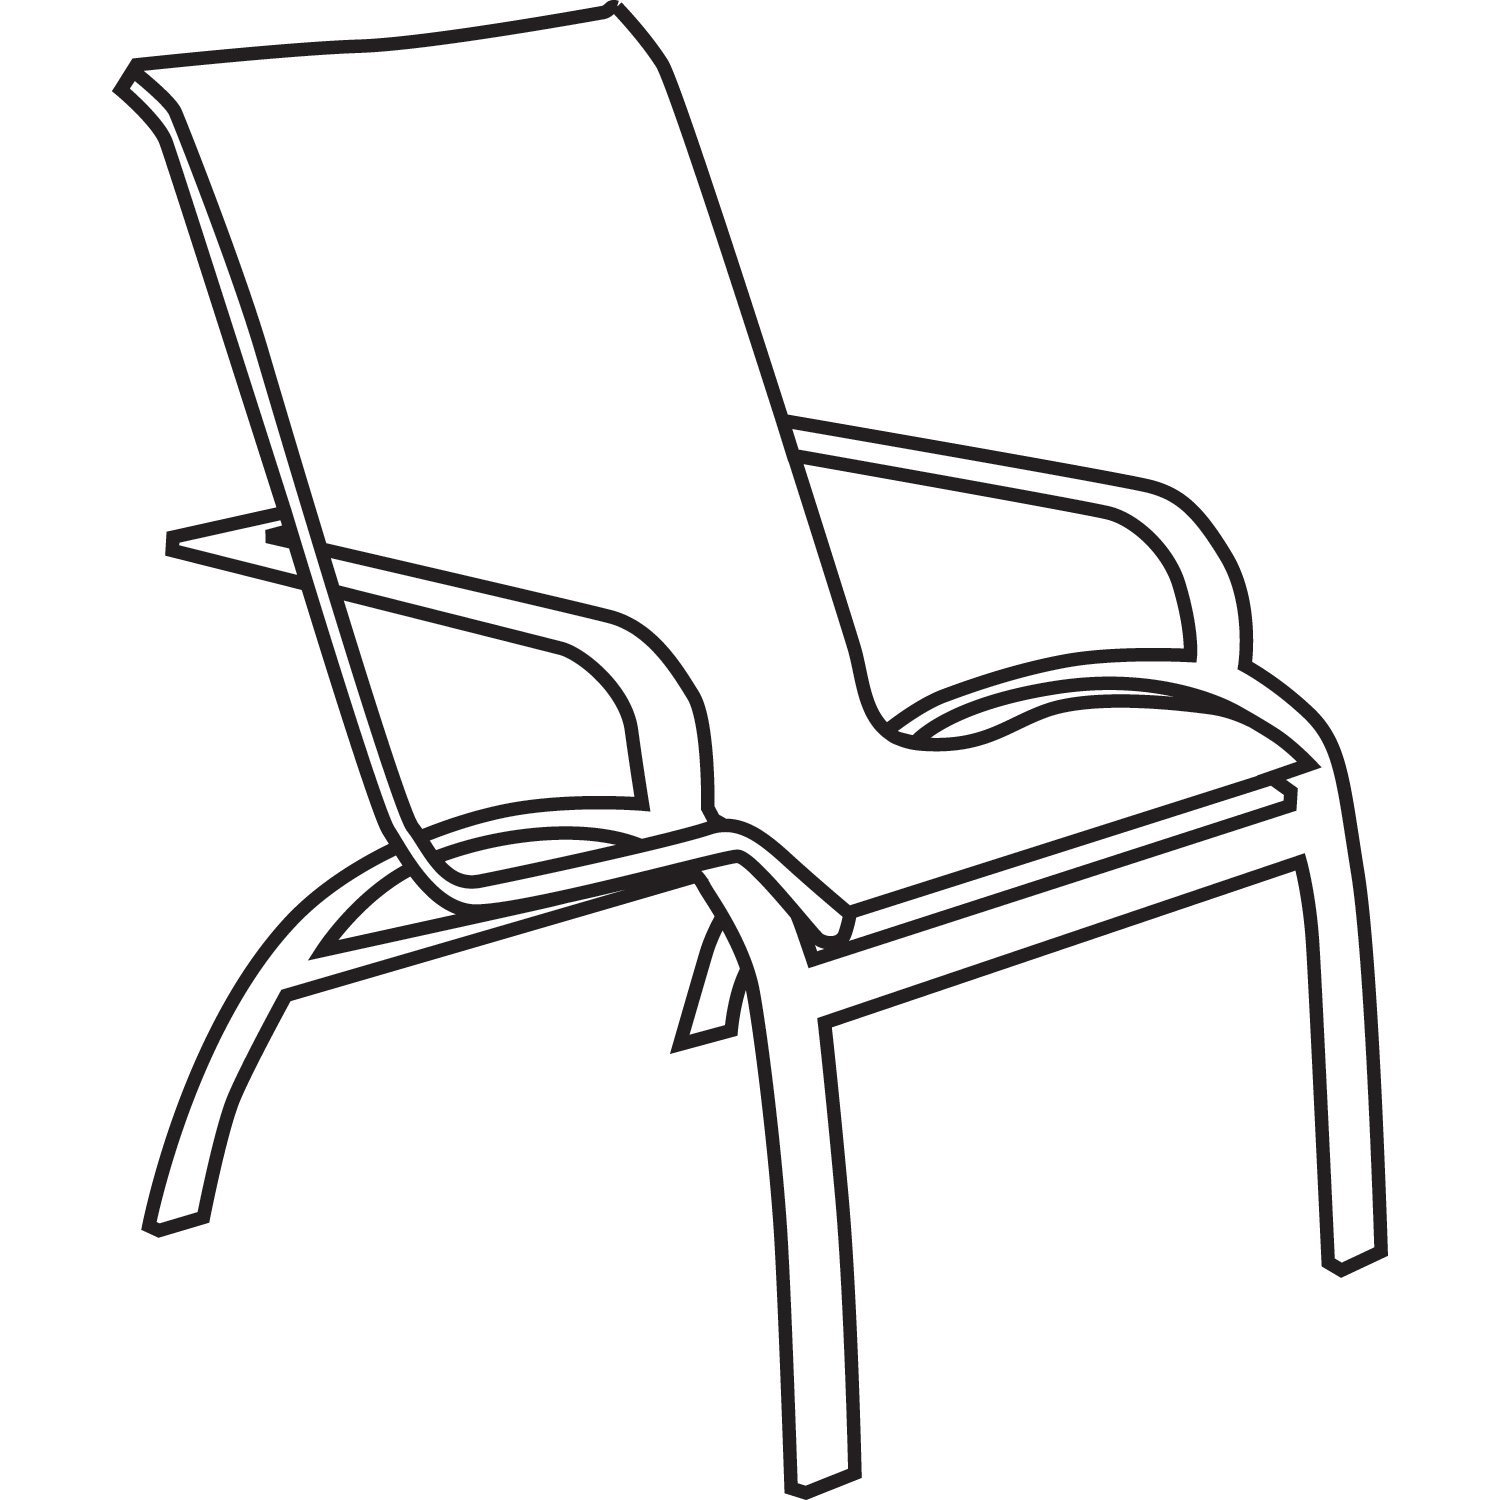 Line Drawing Chair : Lawn chair drawing at getdrawings free for personal